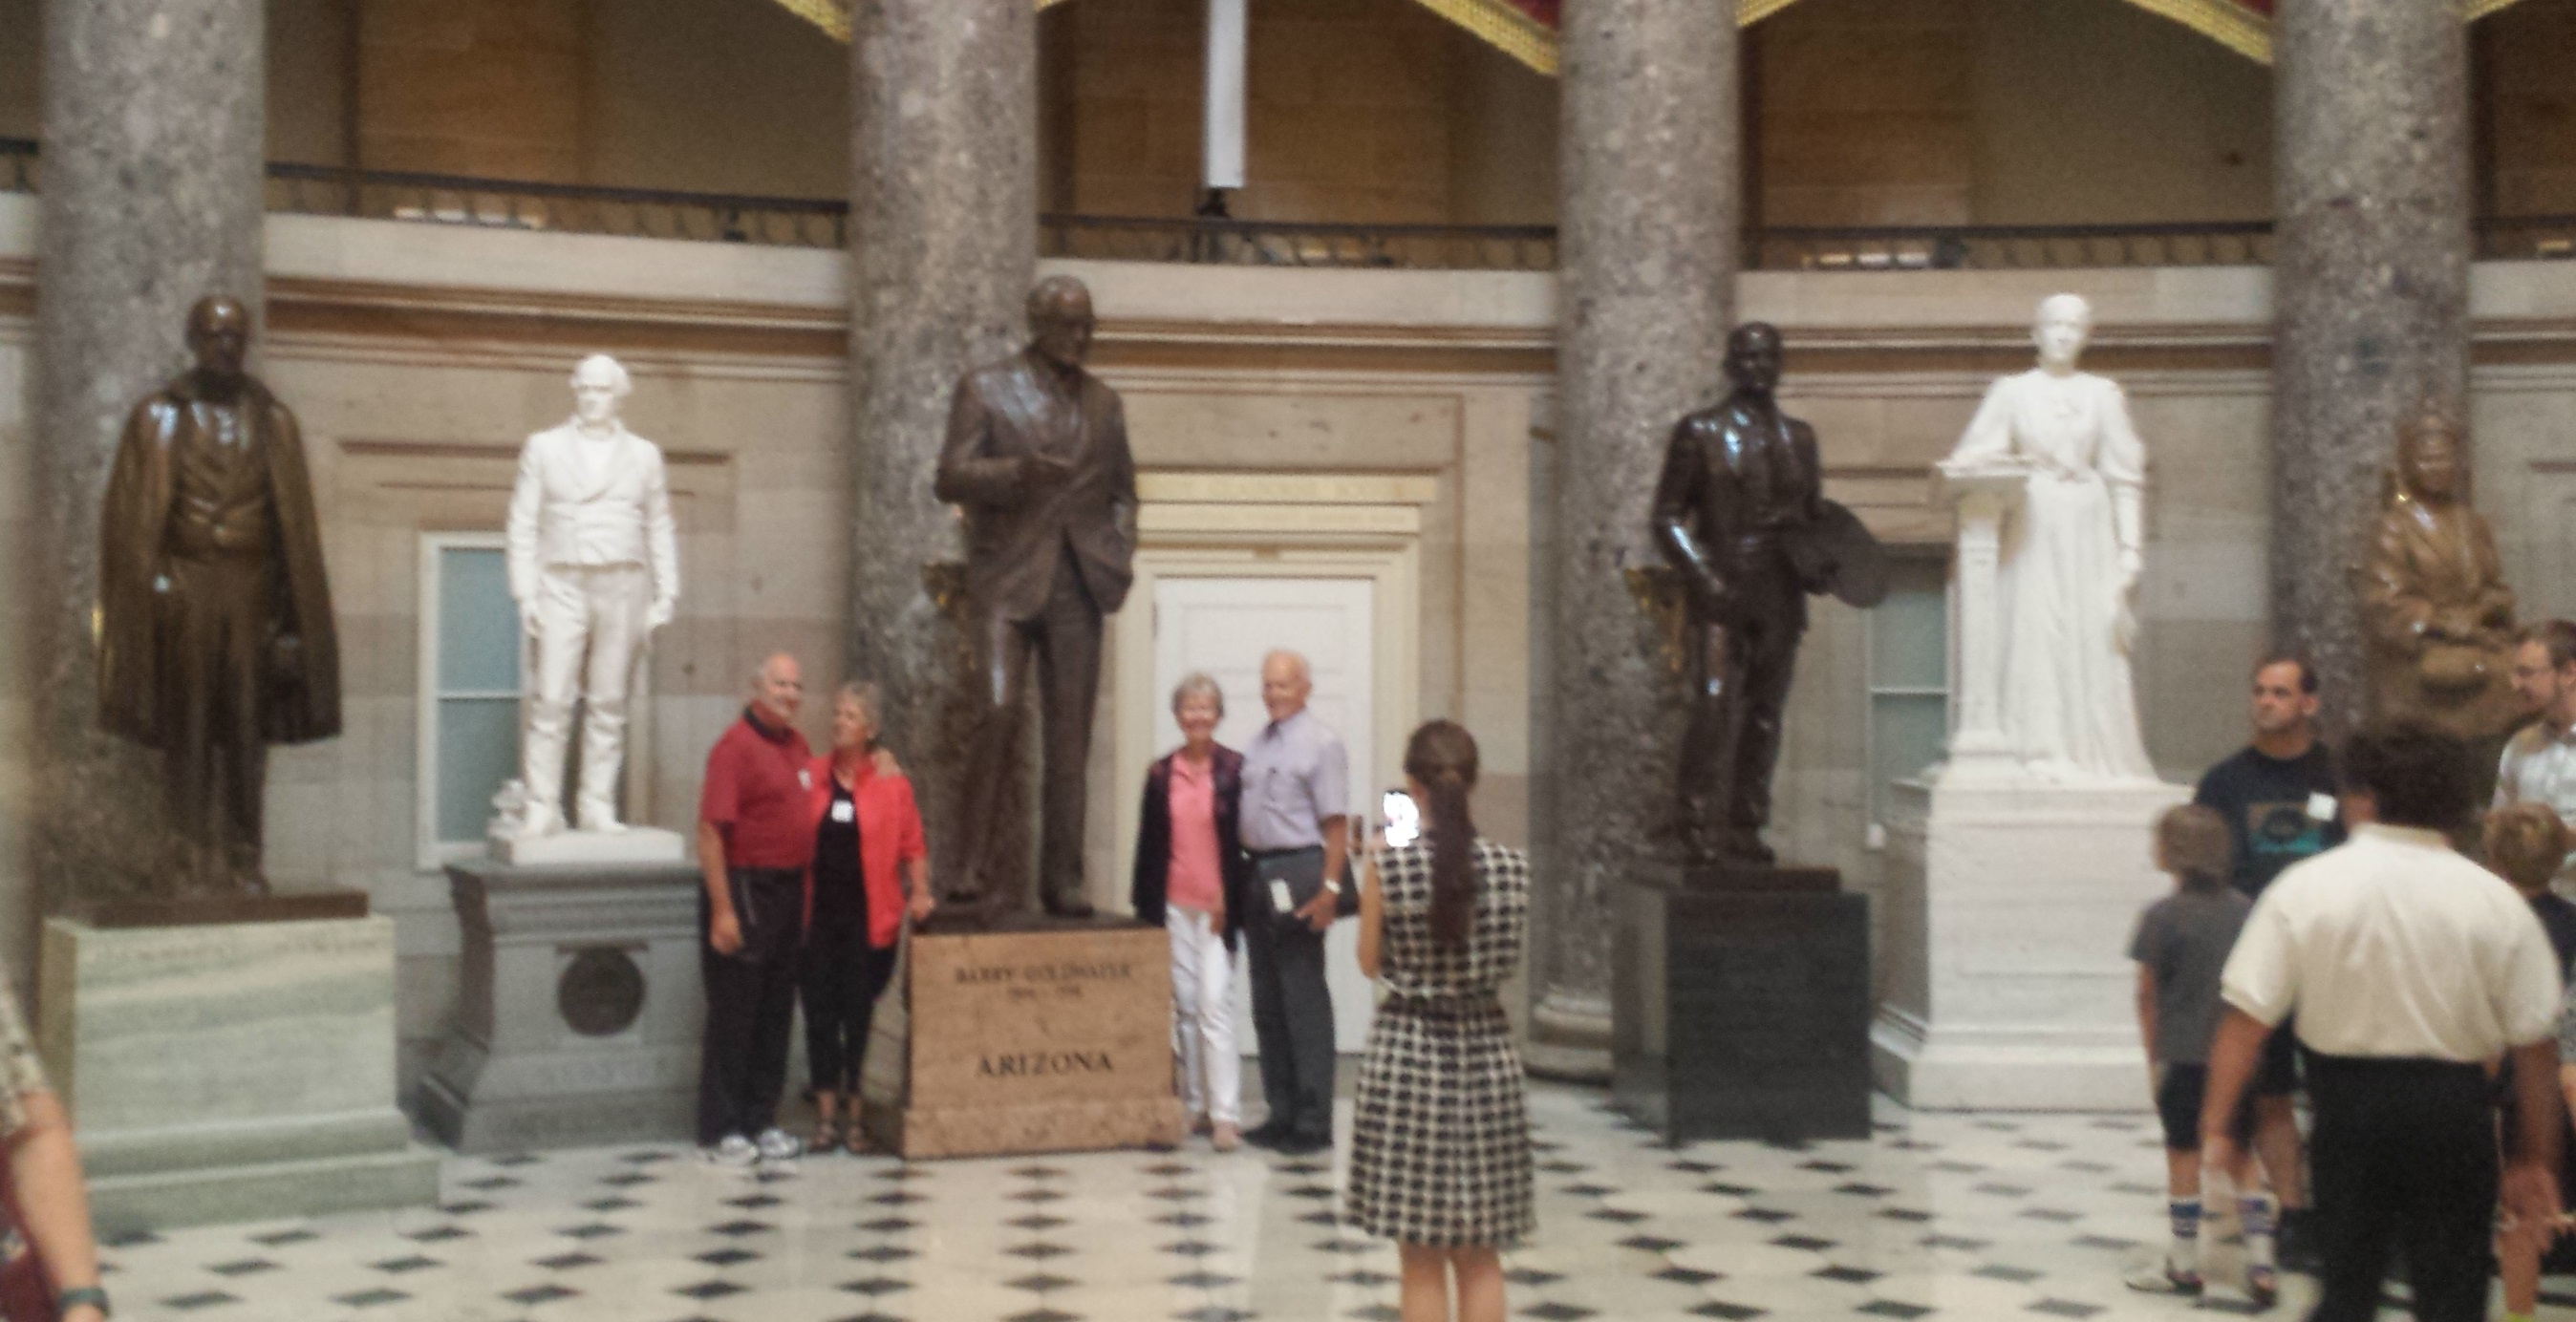 A statue of Andrew Jackson stands in the National Statuary Hall on Capitol Hill